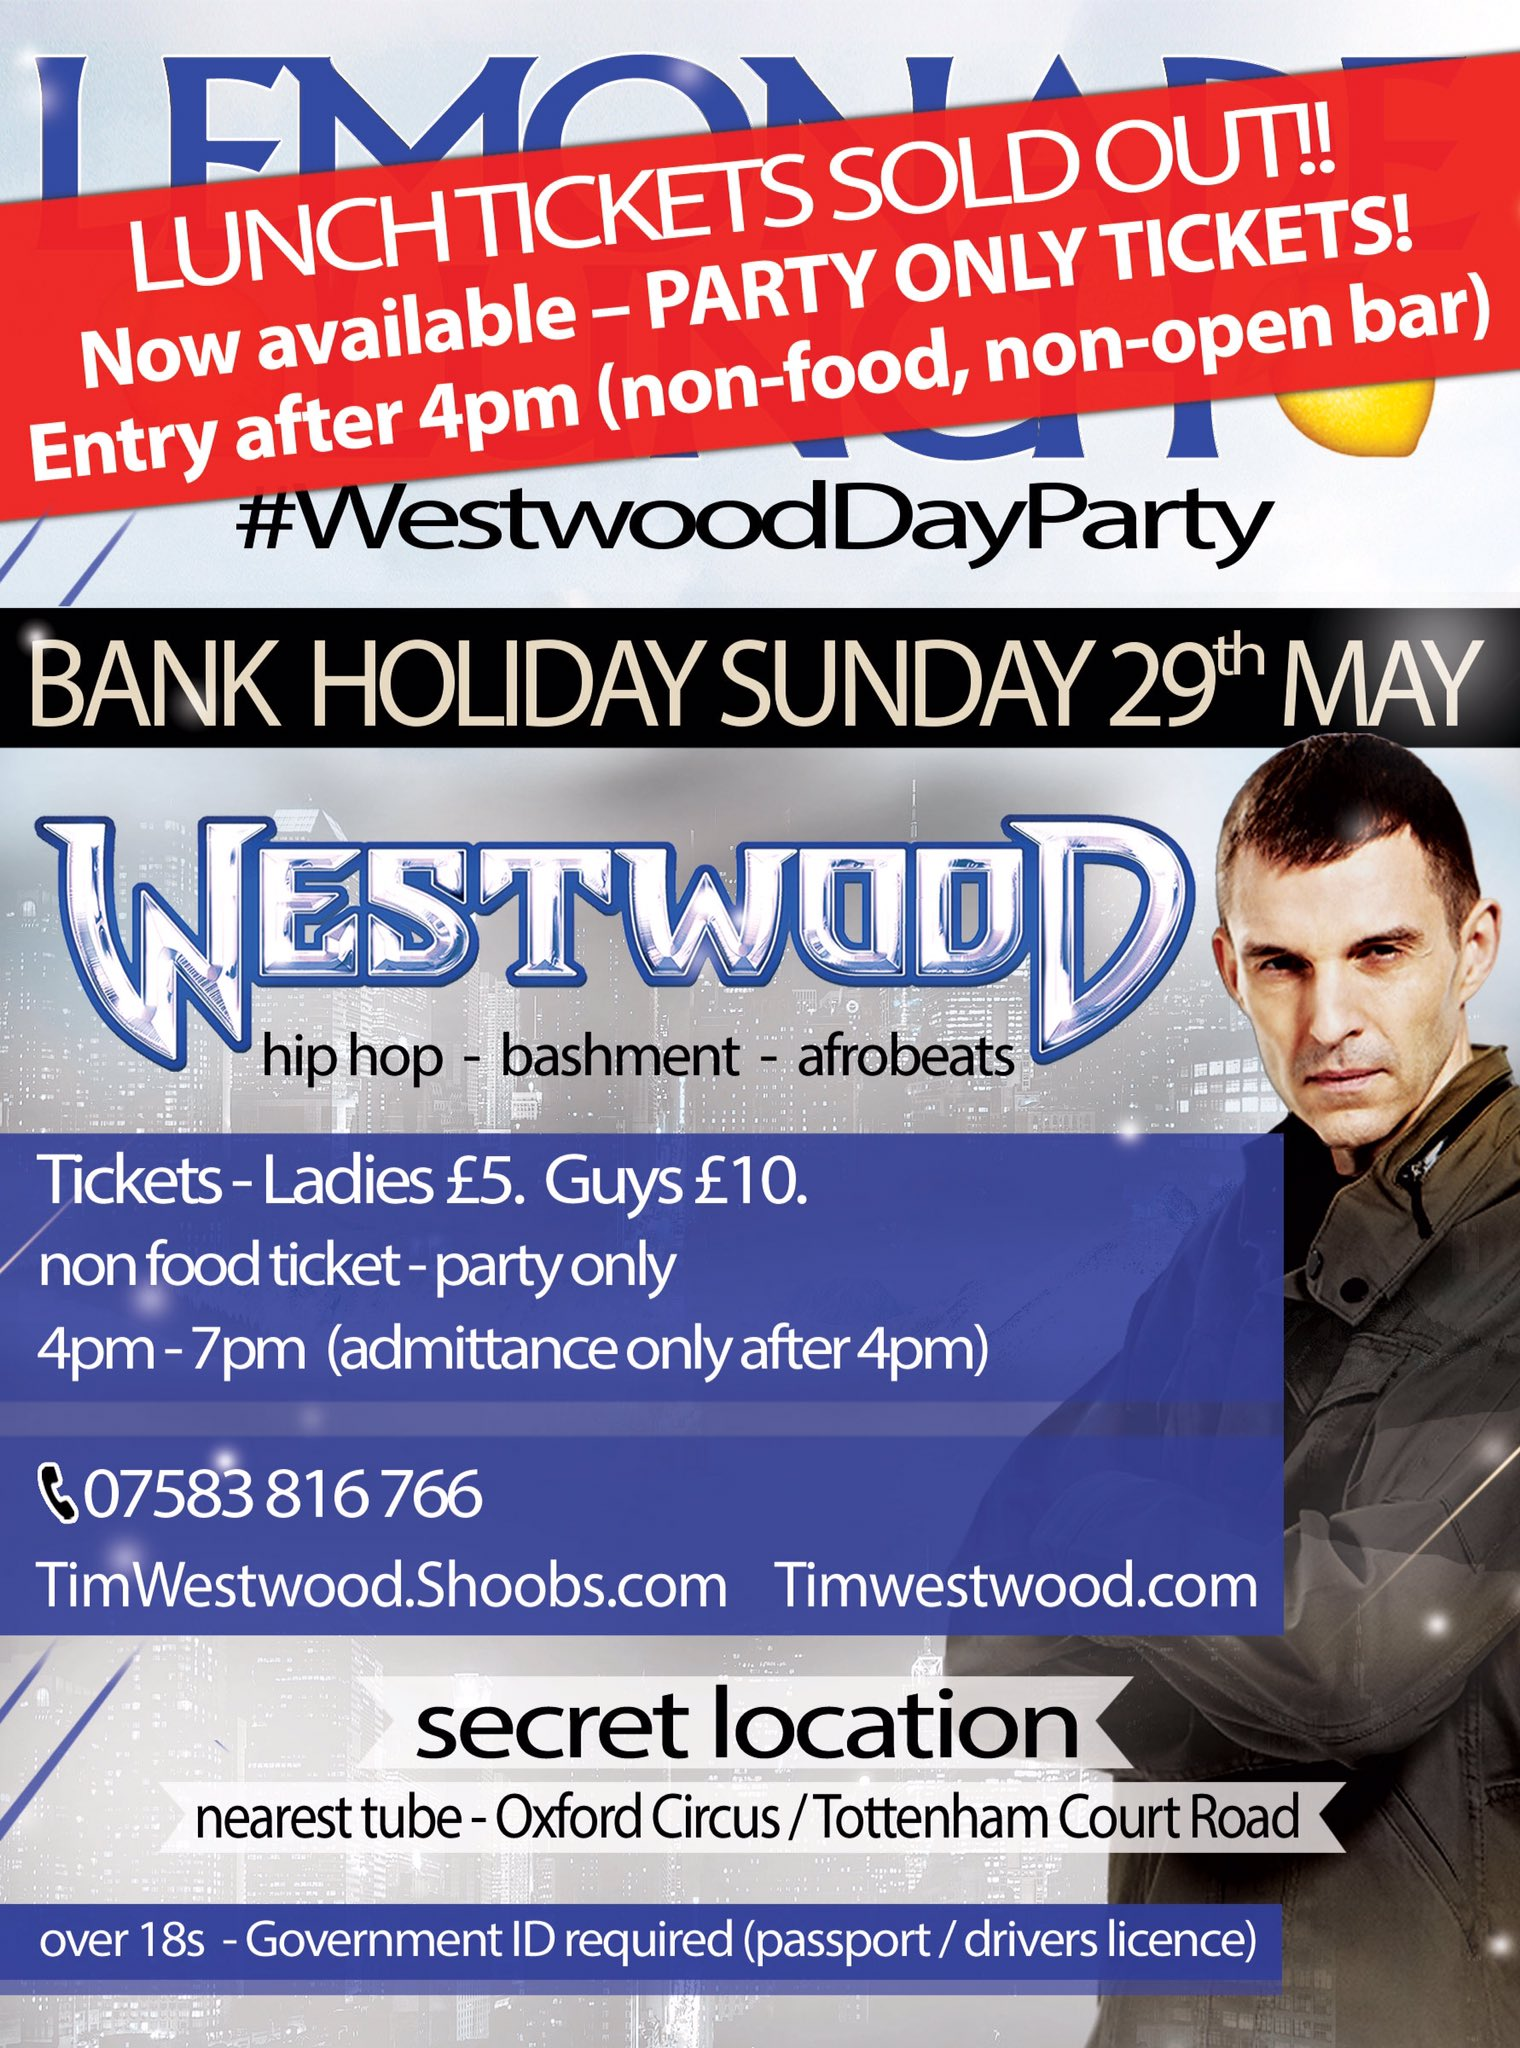 #WestwoodDayParty LUNCH TICKETS SOLD OUT! Now available - PARTY ONLY TICKETS! info https://t.co/DkeU4NhNOX https://t.co/VFT7brh8FO